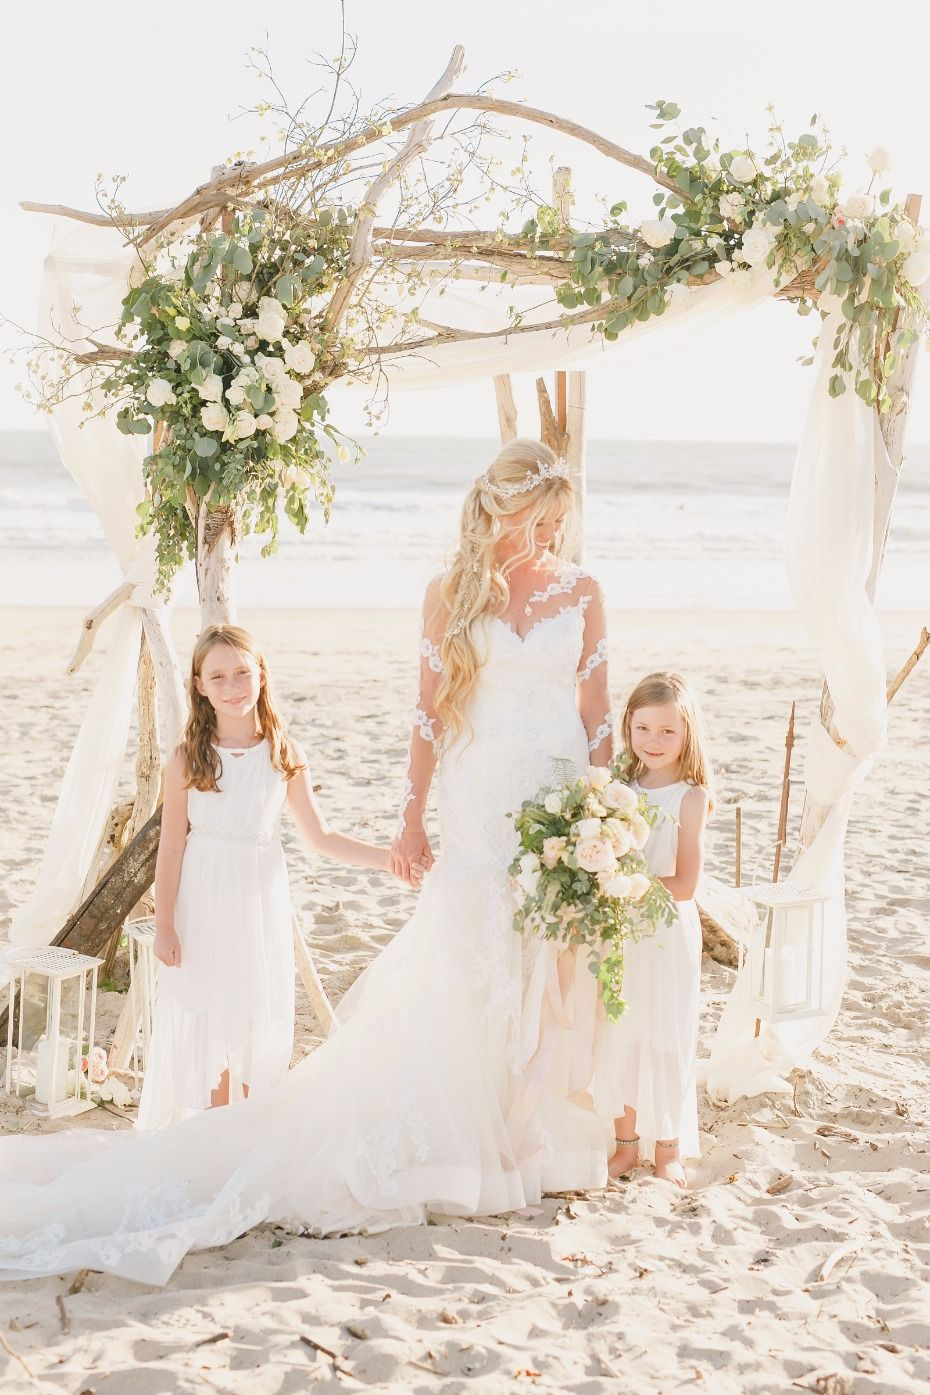 Elegant English Garden Wedding Meets Sun Soaked California Beaches